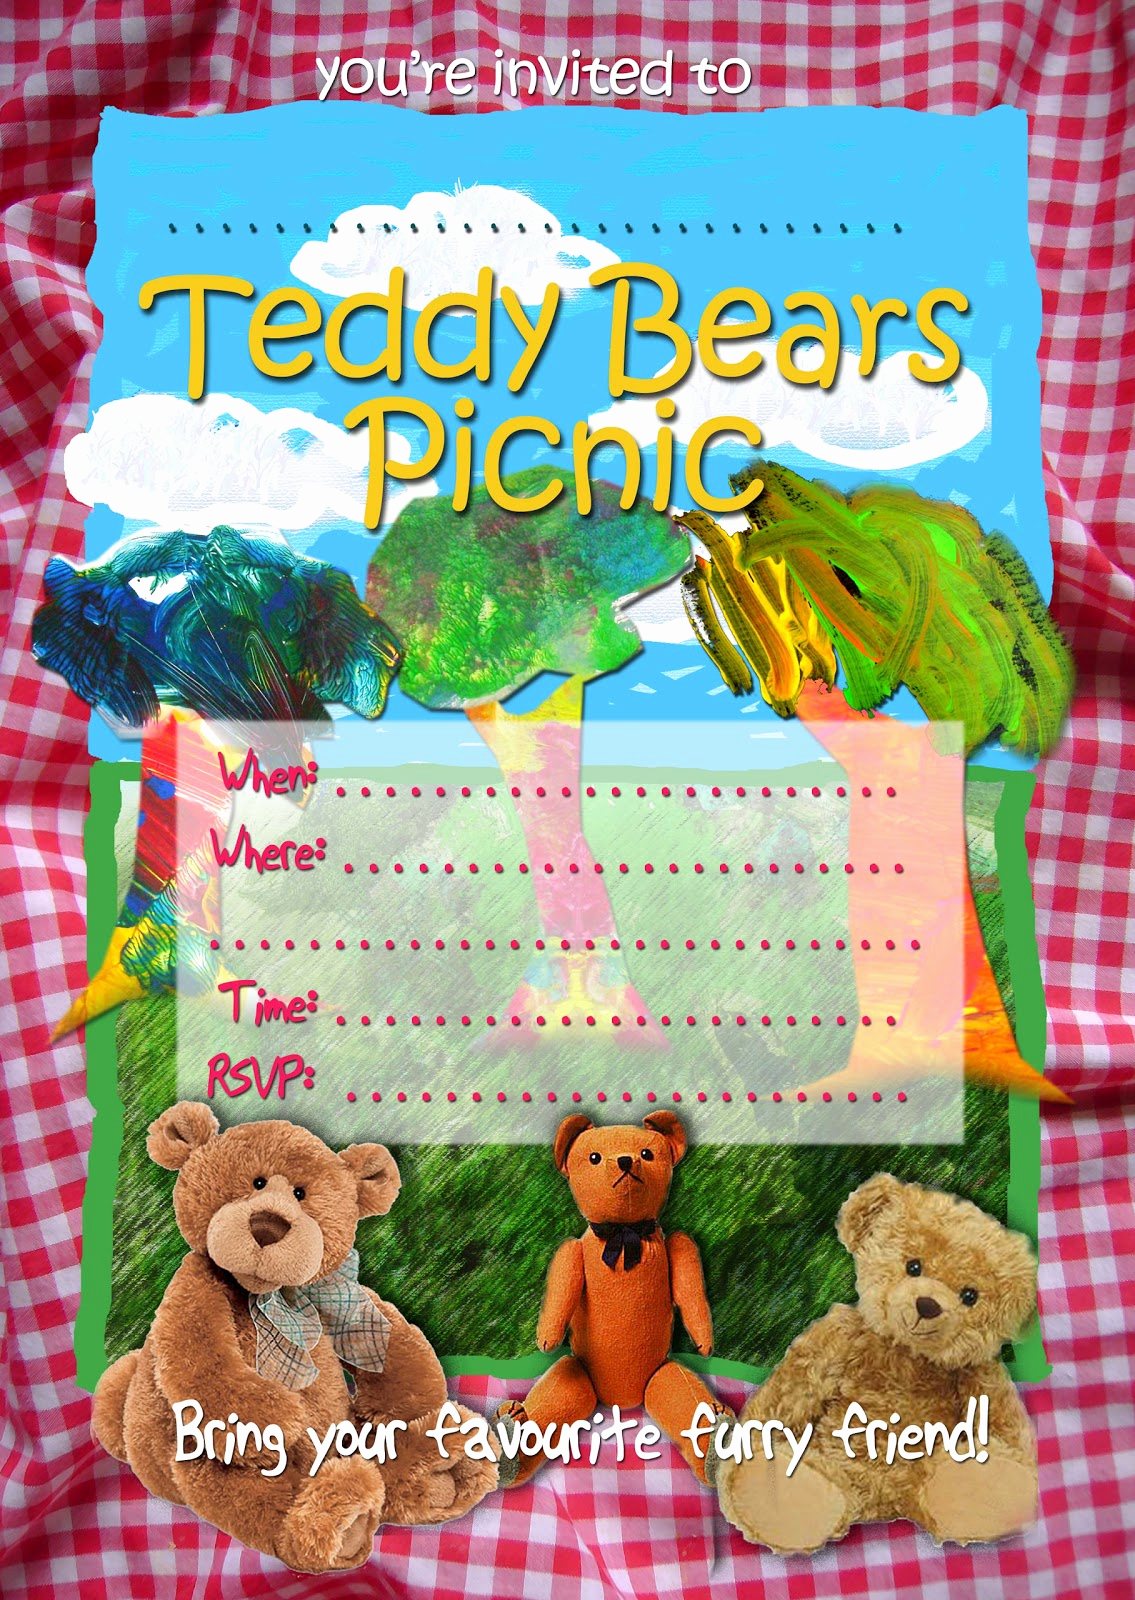 Teddy Bears Picnic Invitation Awesome Free Kids Party Invitations Teddy Bears Picnic Invitation